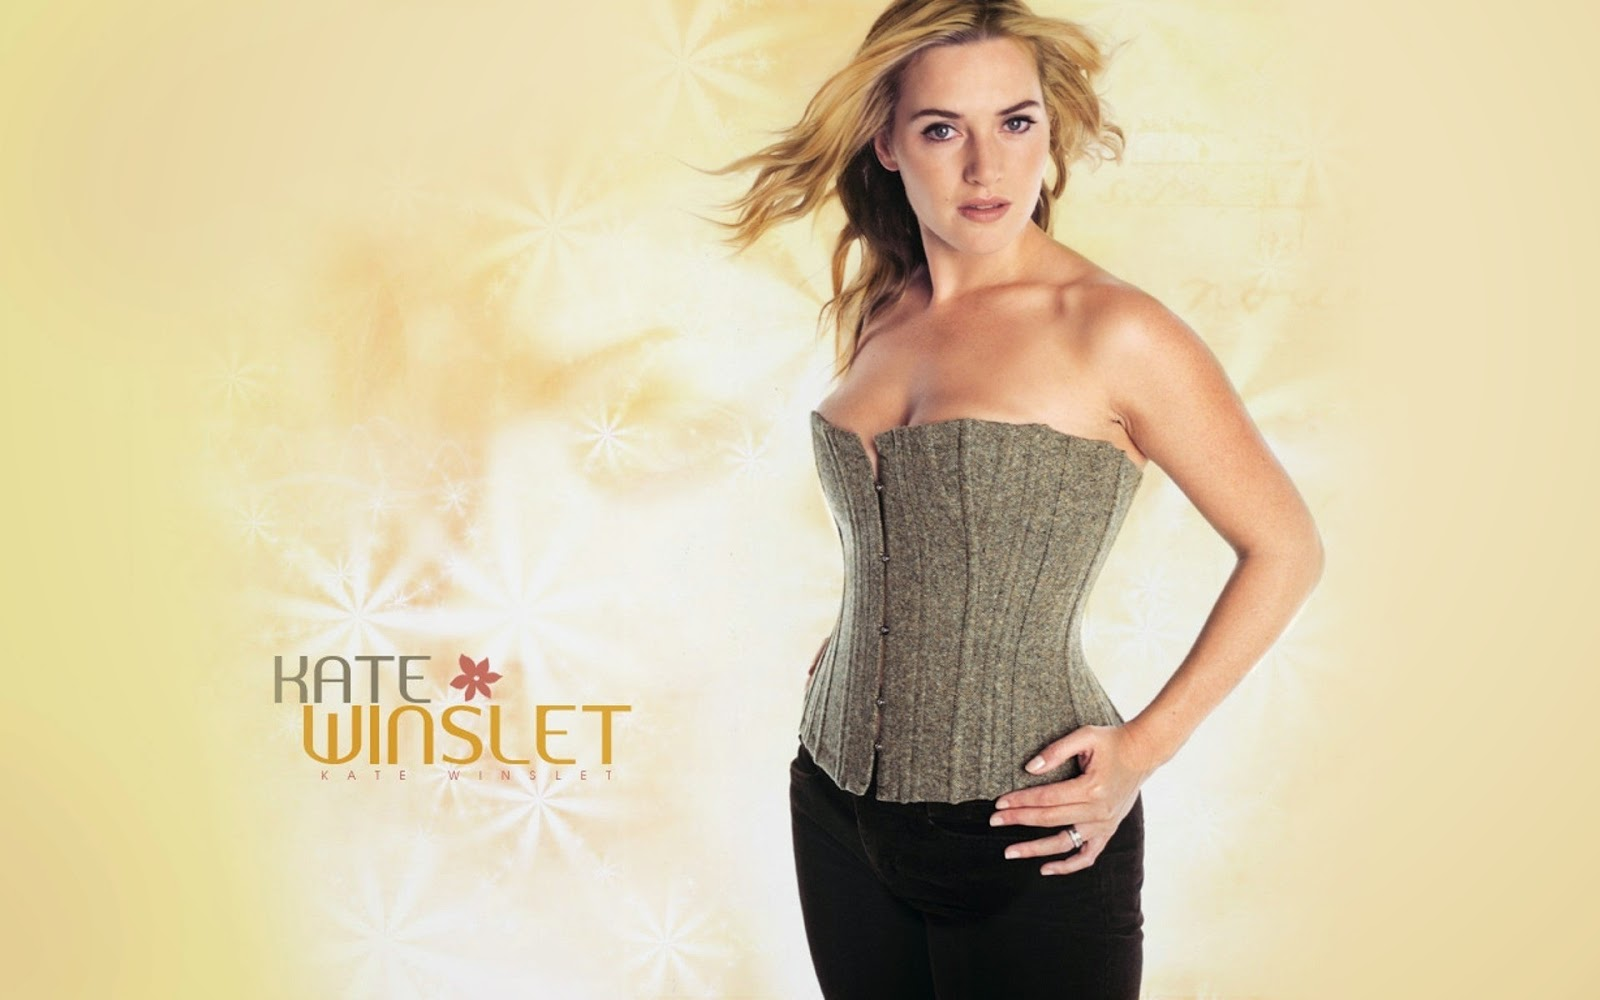 Kate Winslet Wallpapers High Quality Download Free